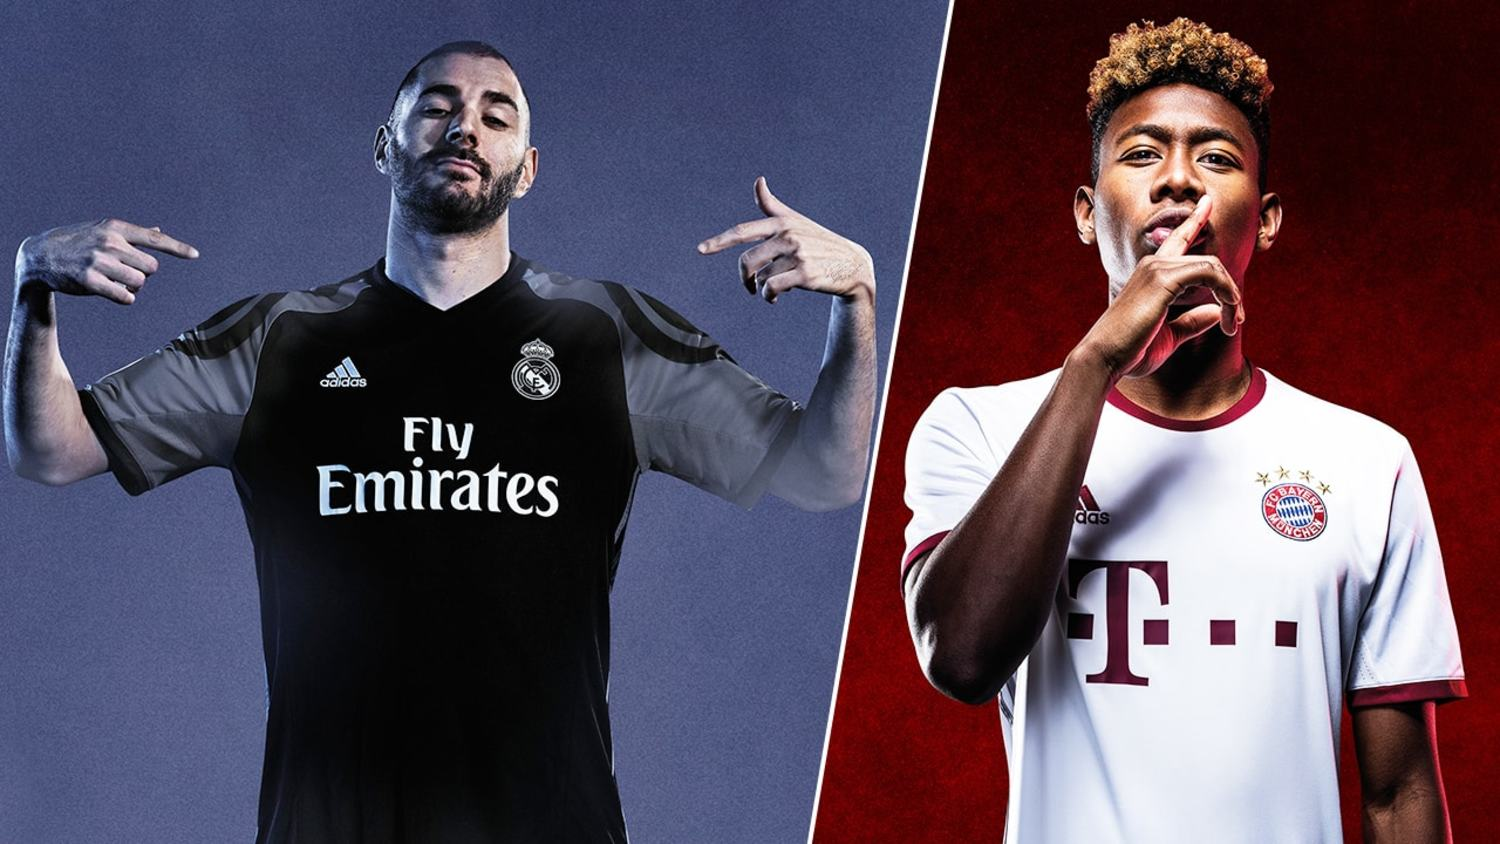 The Best Of Adidas Third Kits for 2016/17 Season: Real Madrid, Chelsea & more